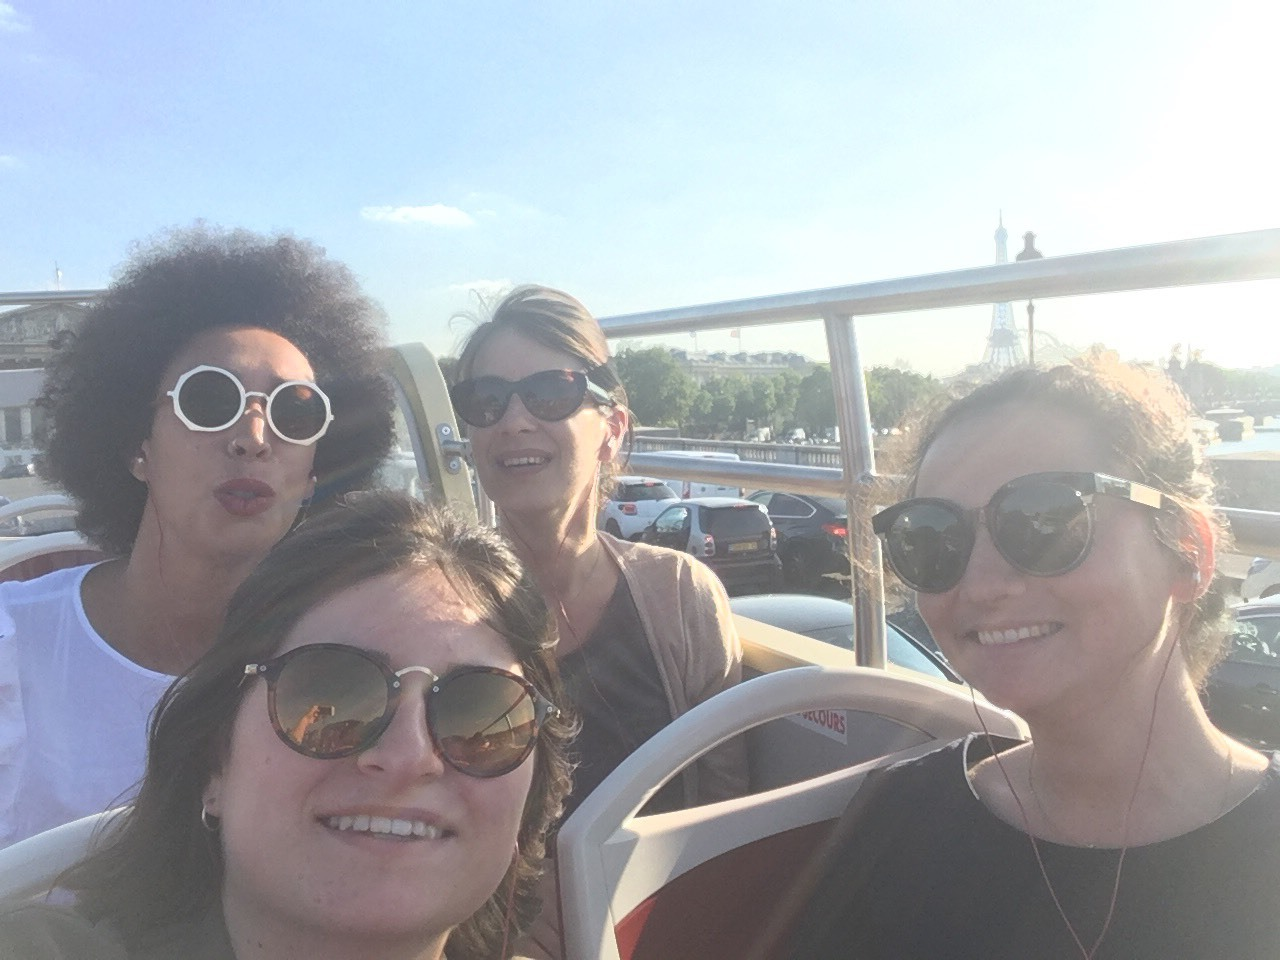 The Paris Sales team on a tour of the city